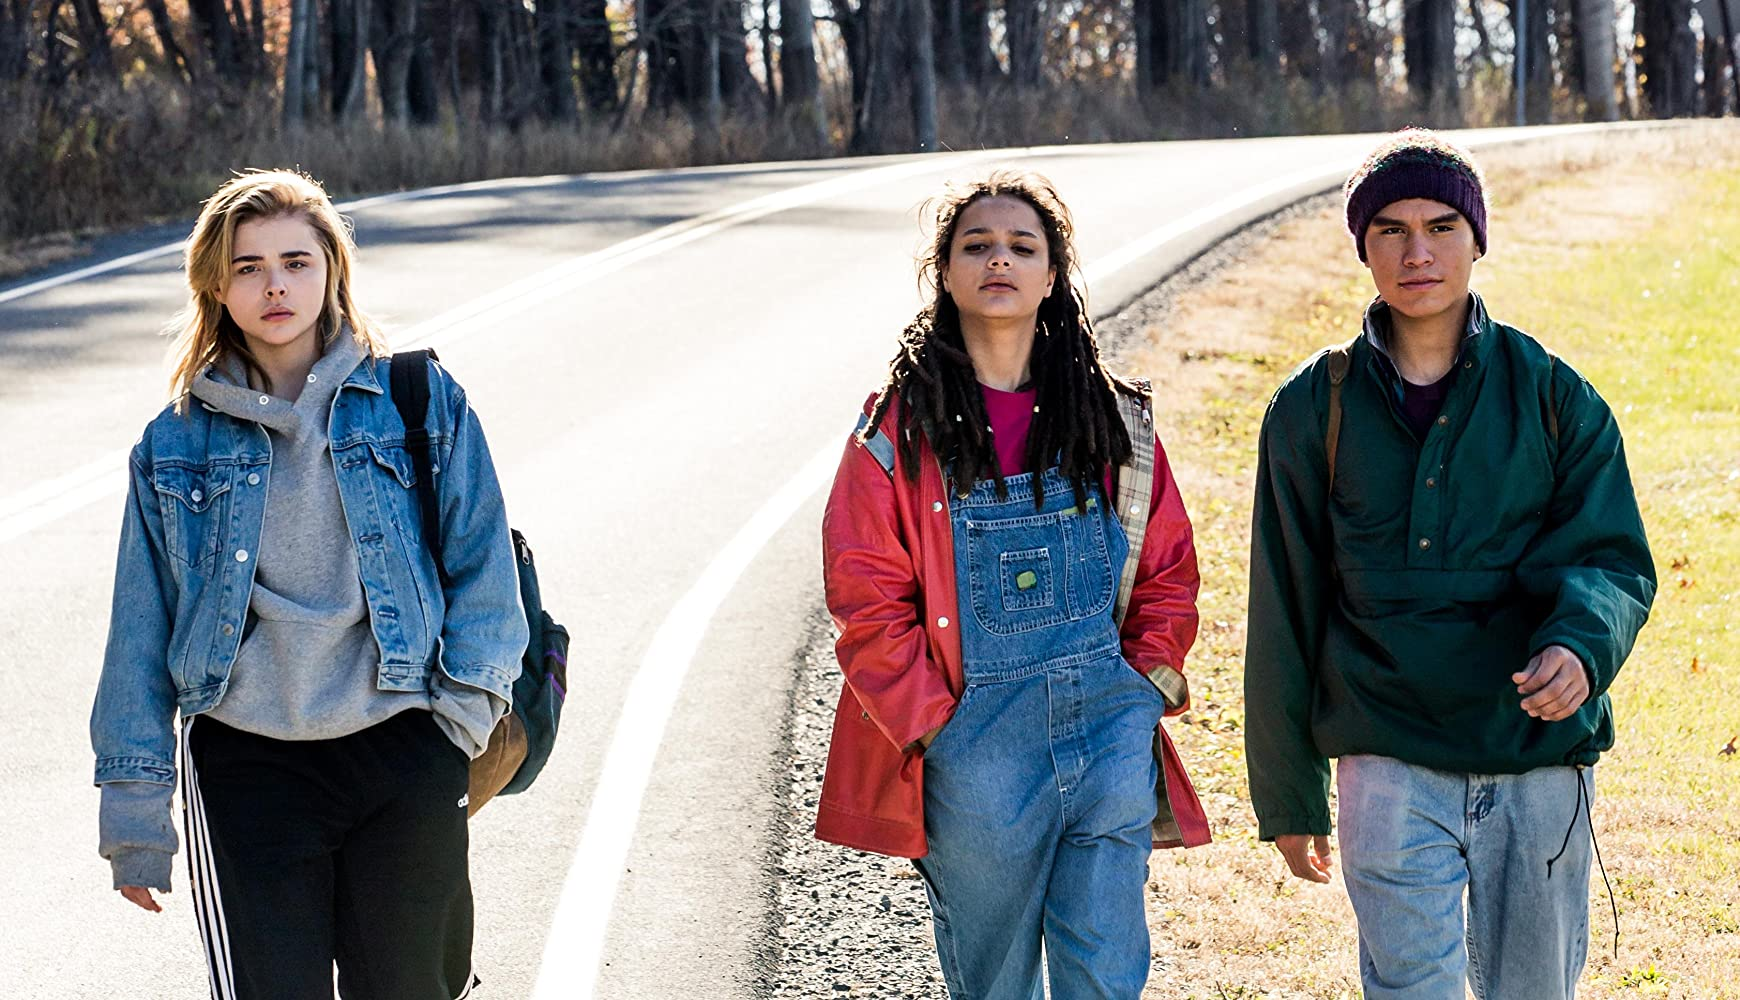 Chloë Grace Moretz, Forrest Goodluck, and Sasha Lane in The Miseducation of Cameron Post (2018)